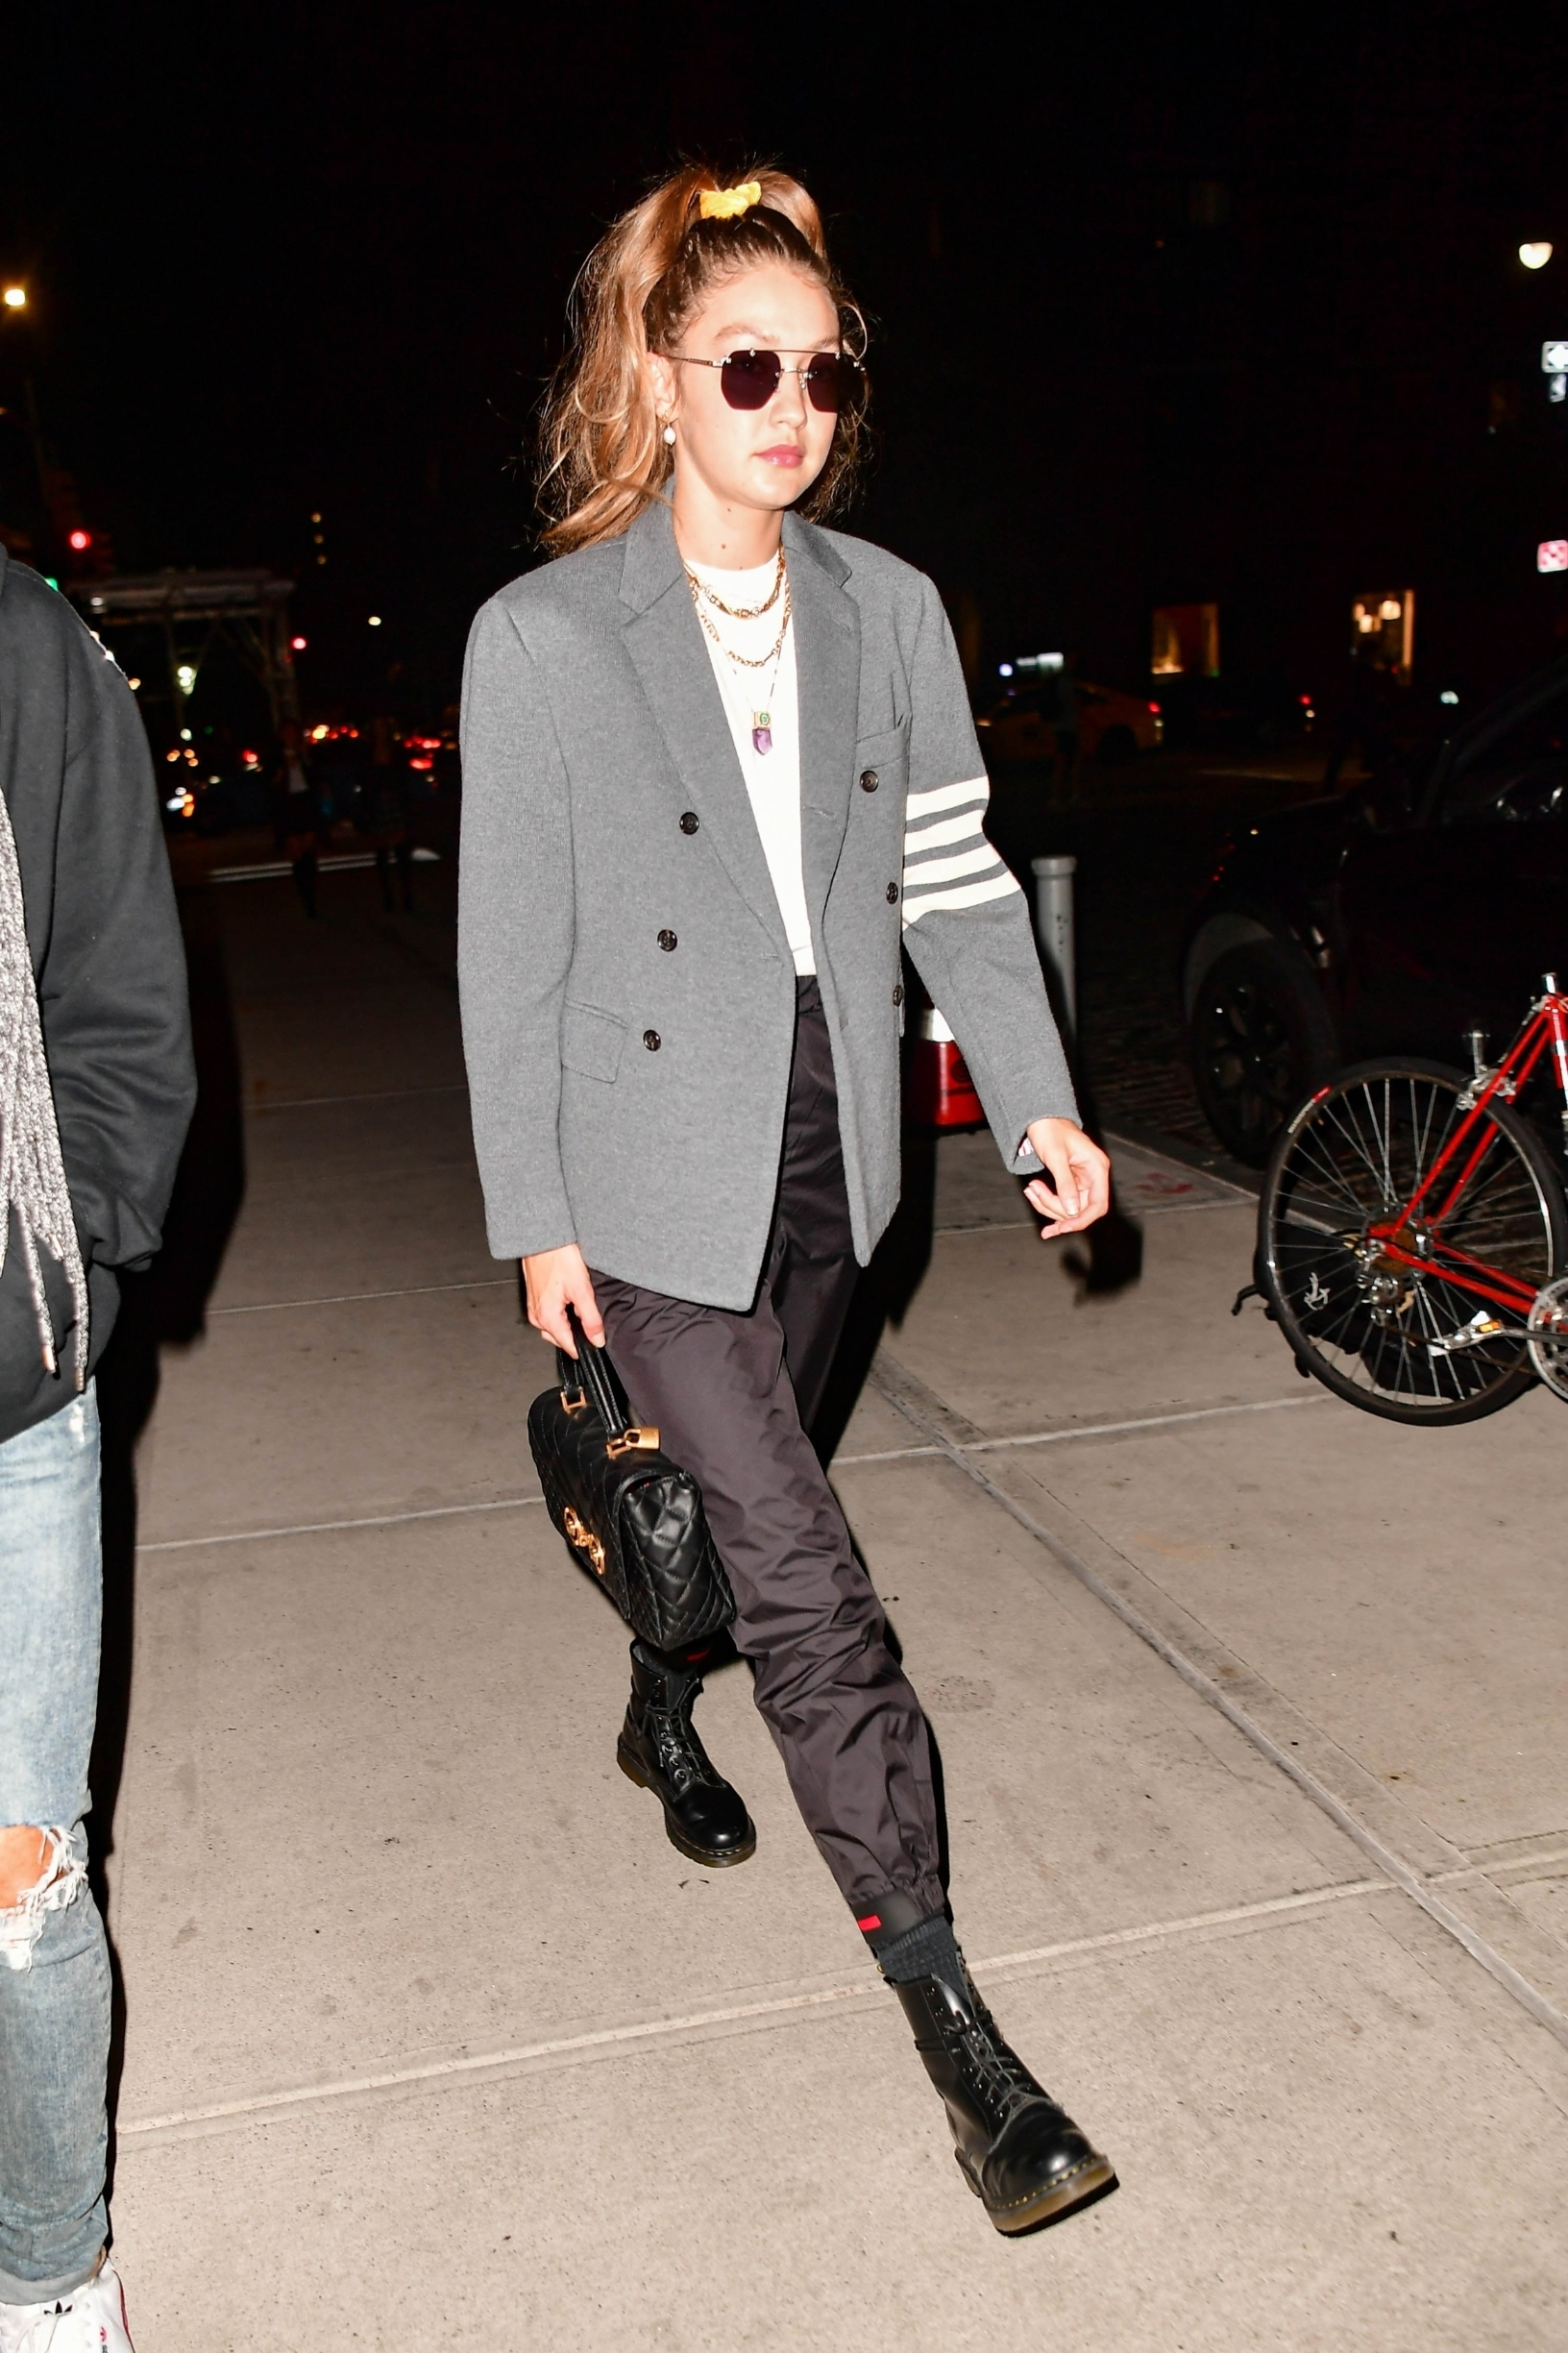 New York, Ny  - Gigi Hadid going out for dinner with a male friend  BACKGRID USA 7 OCTOBER 2019, Image: 475551892, License: Rights-managed, Restrictions: RIGHTS: WORLDWIDE EXCEPT IN FRANCE, GERMANY, POLAND, Model Release: no, Credit line: Skyler2018 / BACKGRID / Backgrid USA / Profimedia